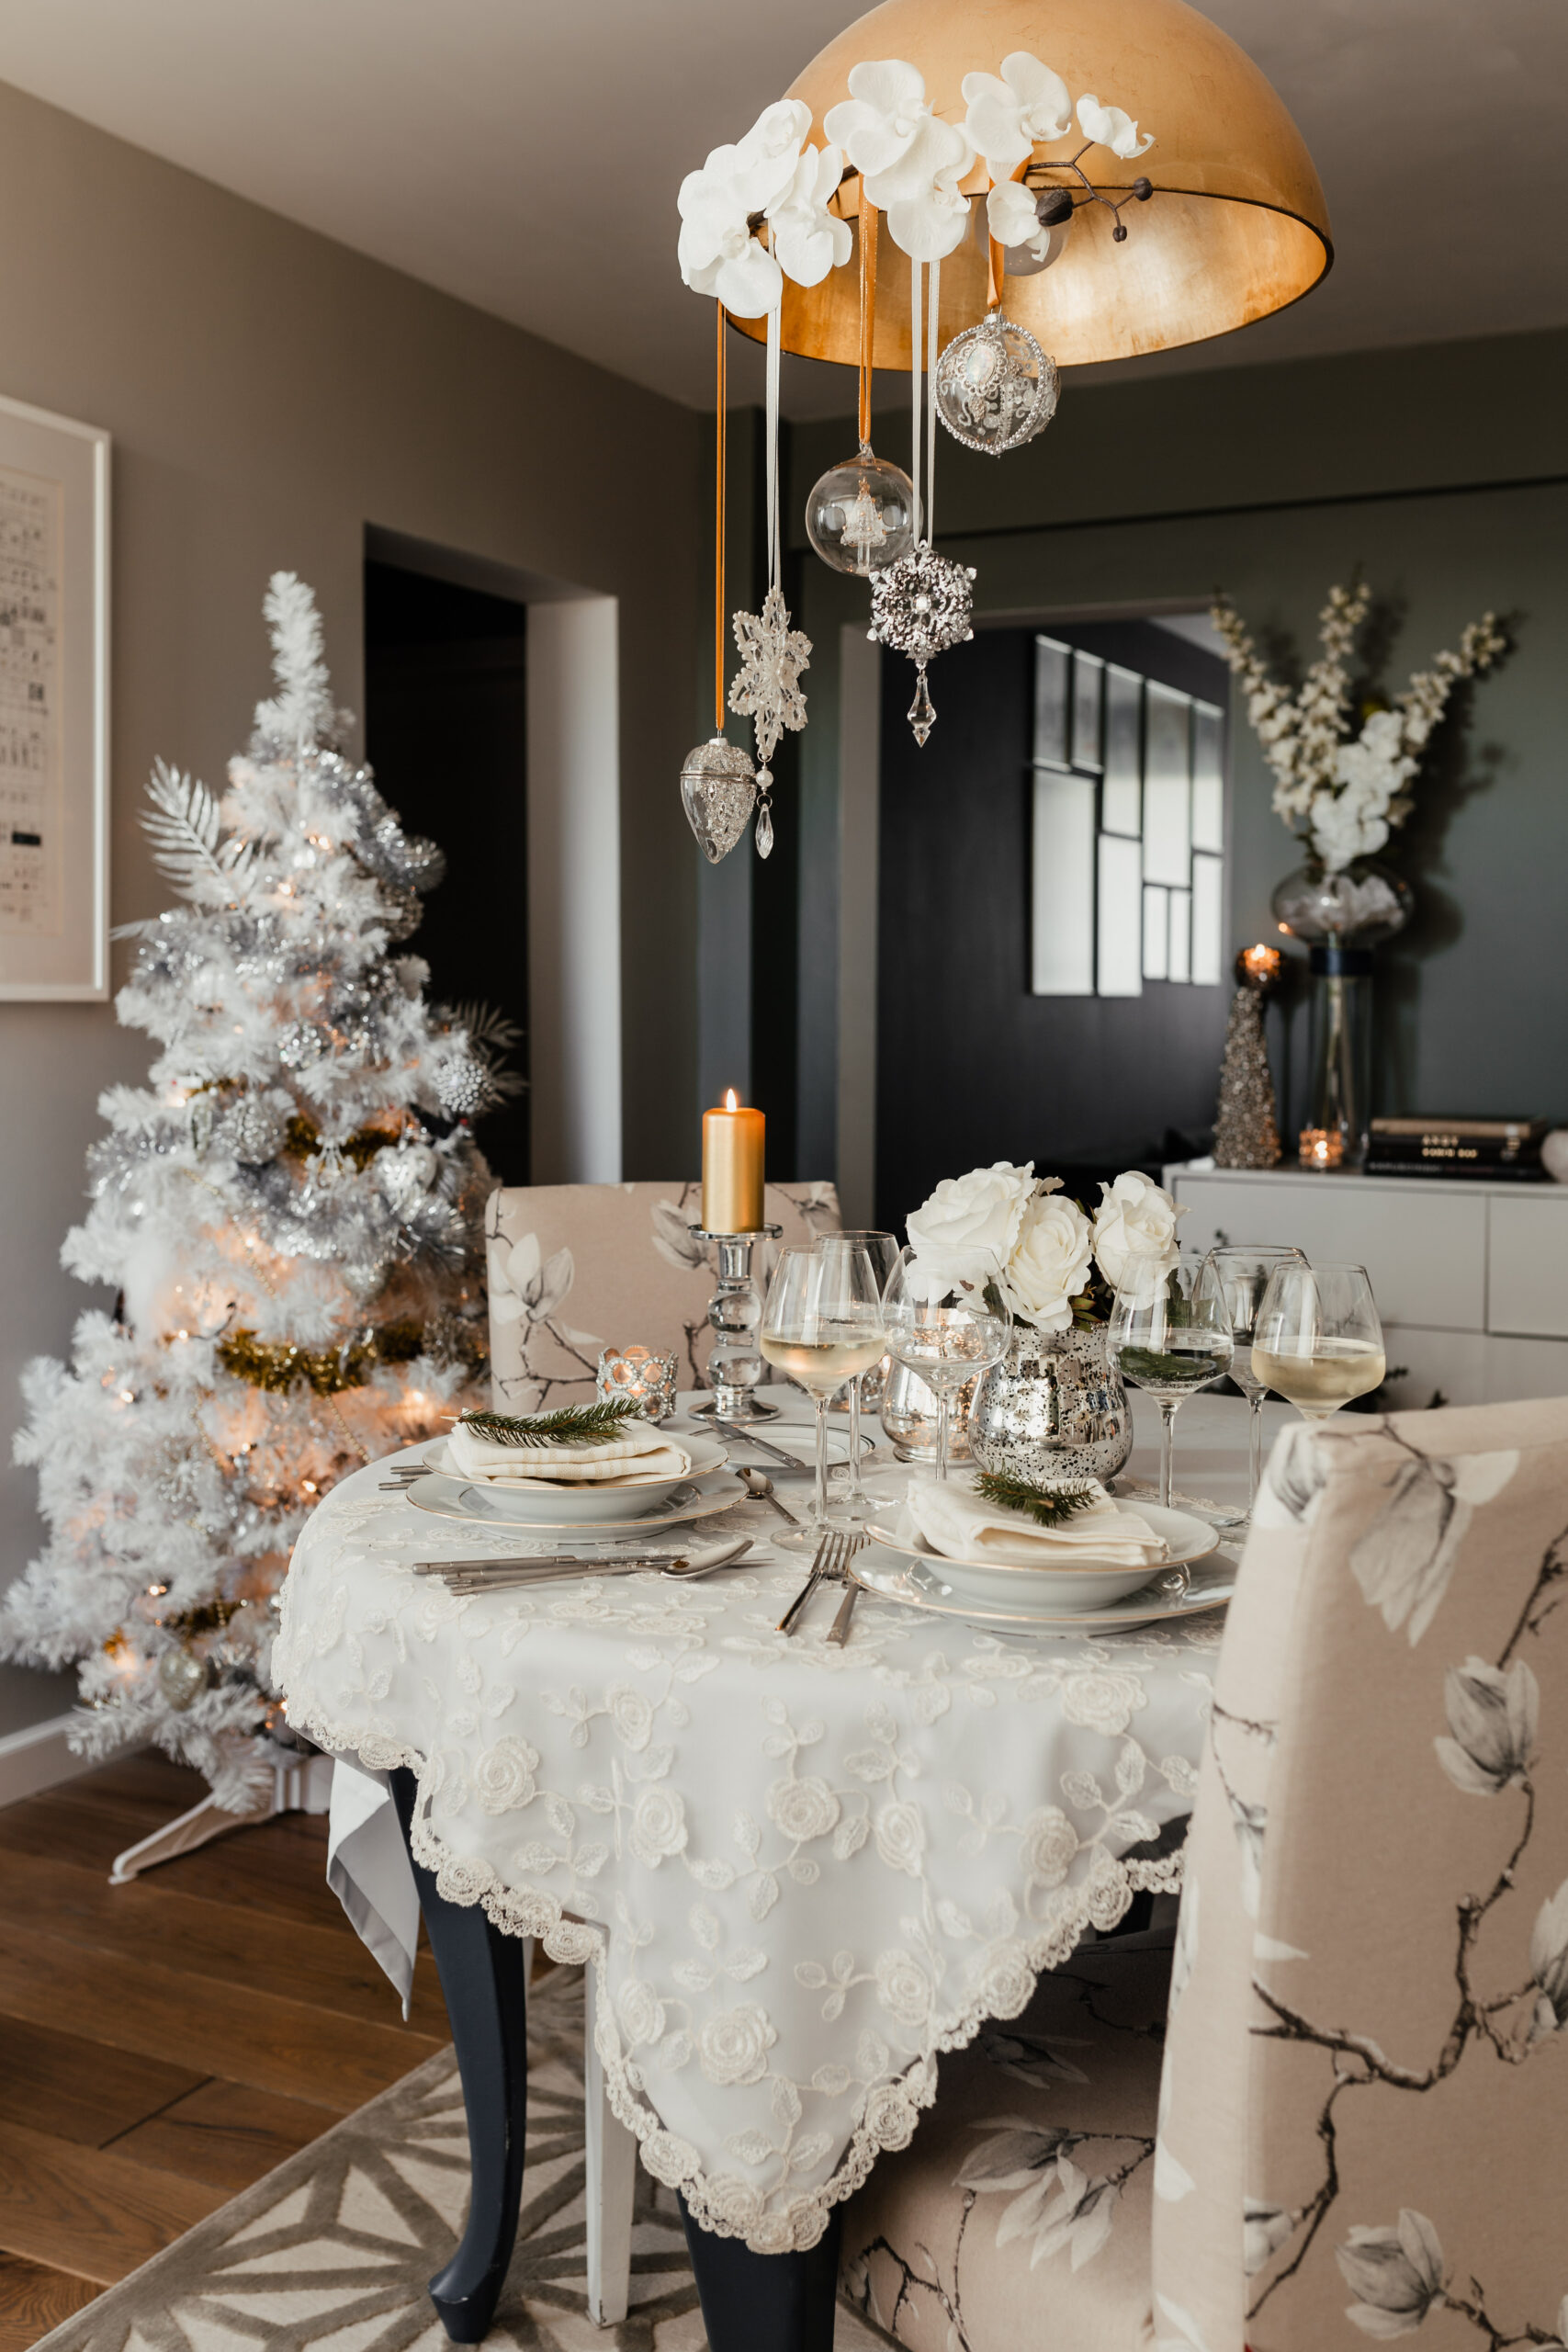 photo of a dining room beautifully decorated for the holidays in a snow white theme with a white Christmas tree, white table cloth, and white decorations, representing a calm, stress-free holiday season without meltdowns or stress